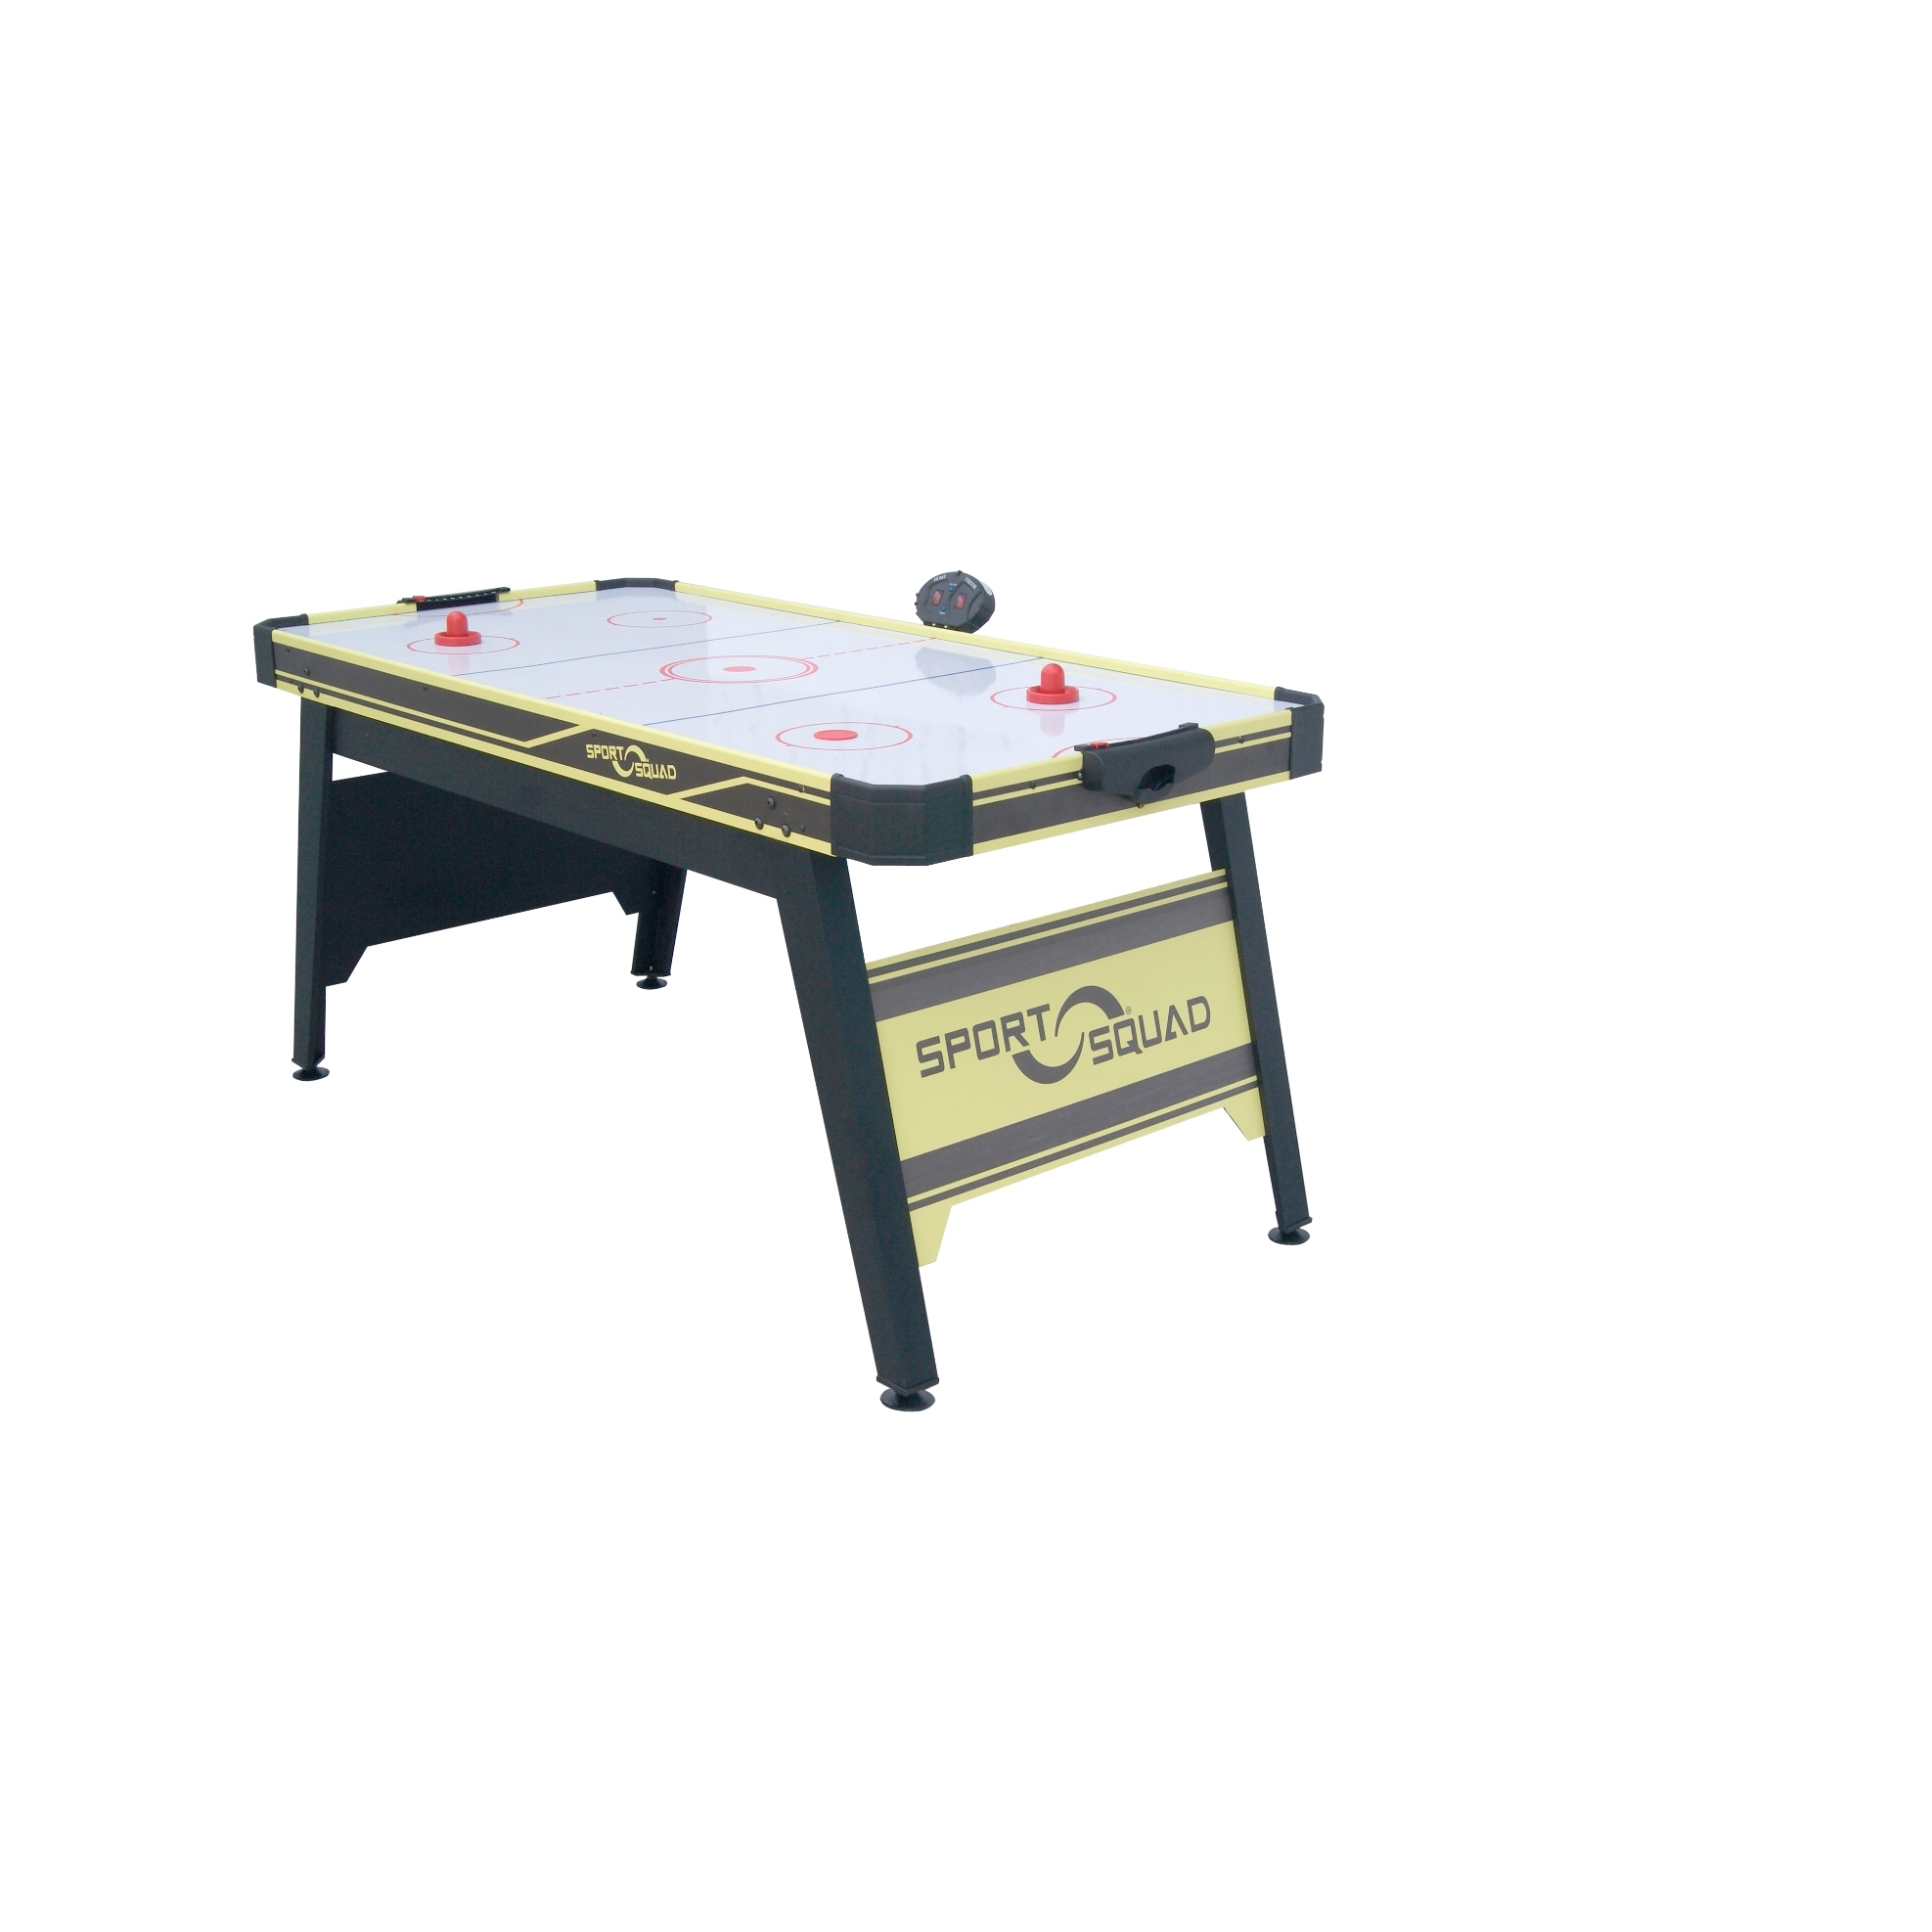 Sport-Squad-66in-Air-Powered-Hockey-BLACK-YELLOW-with-Table-Tennis-Conversion-Top